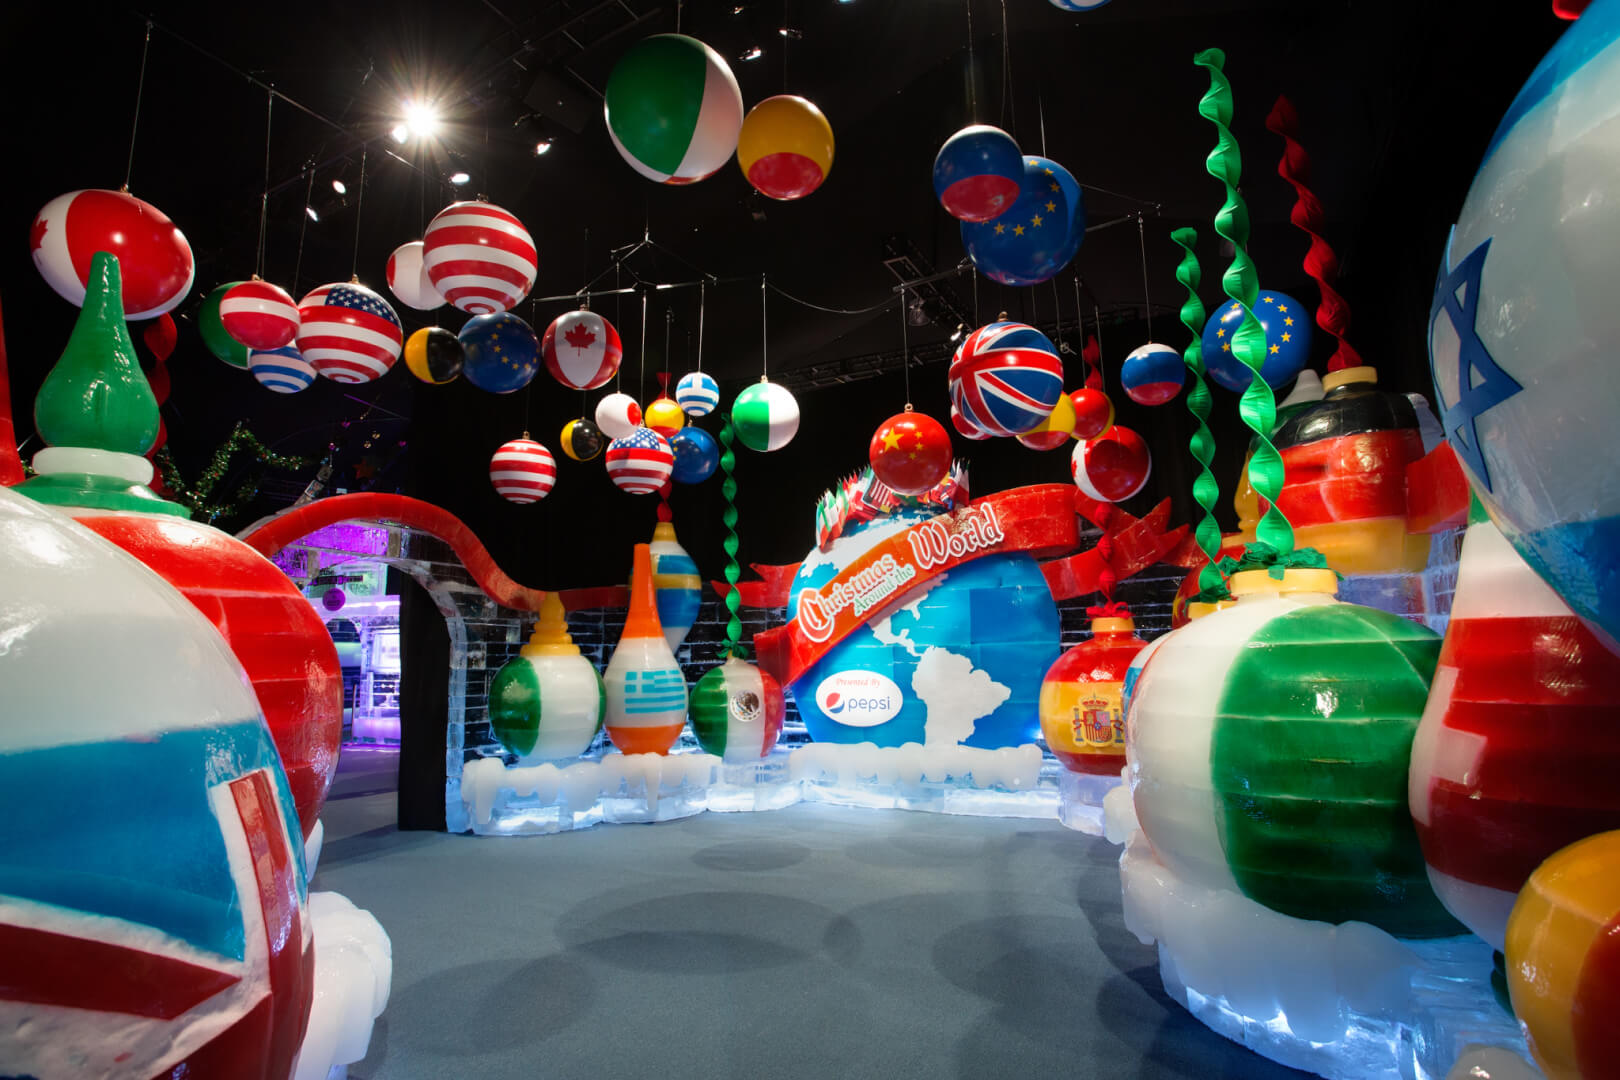 artisans from harbin china home of the worlds largest ice and snow sculpture festival travel more than 6000 miles to hand carve more than two million - Christmas Around The World Decorations For A Party